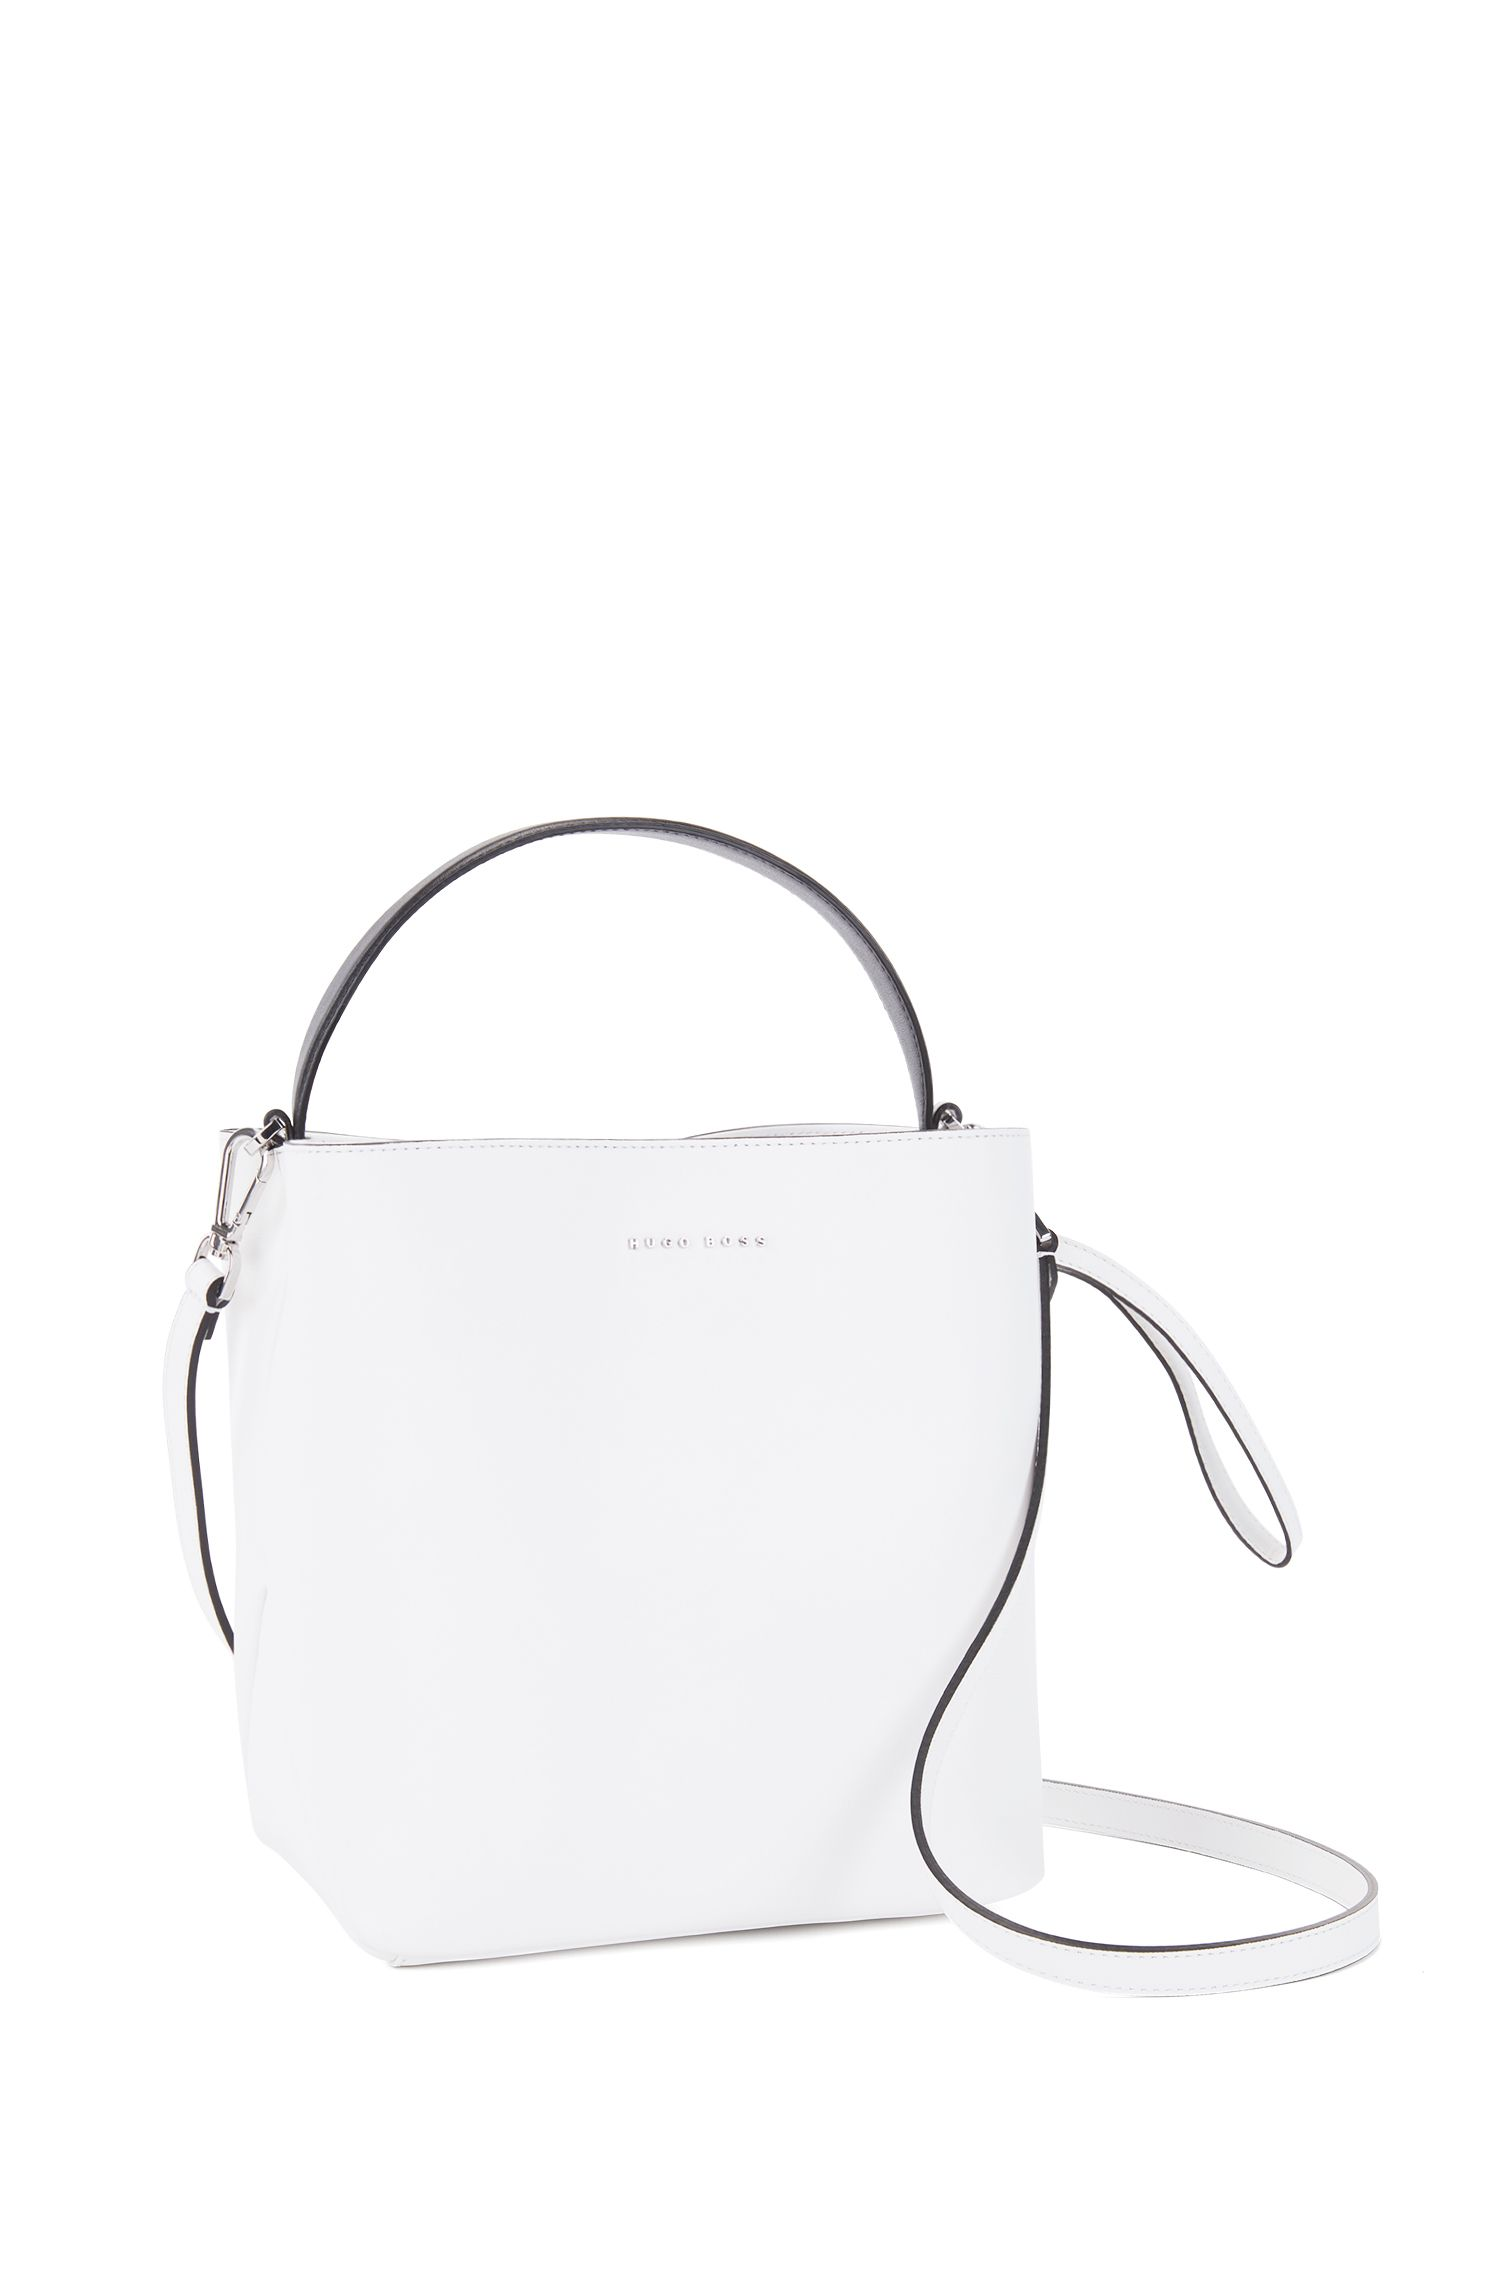 HUGO BOSS Gallery Collection bucket bag in monochrome Italian nappa leather